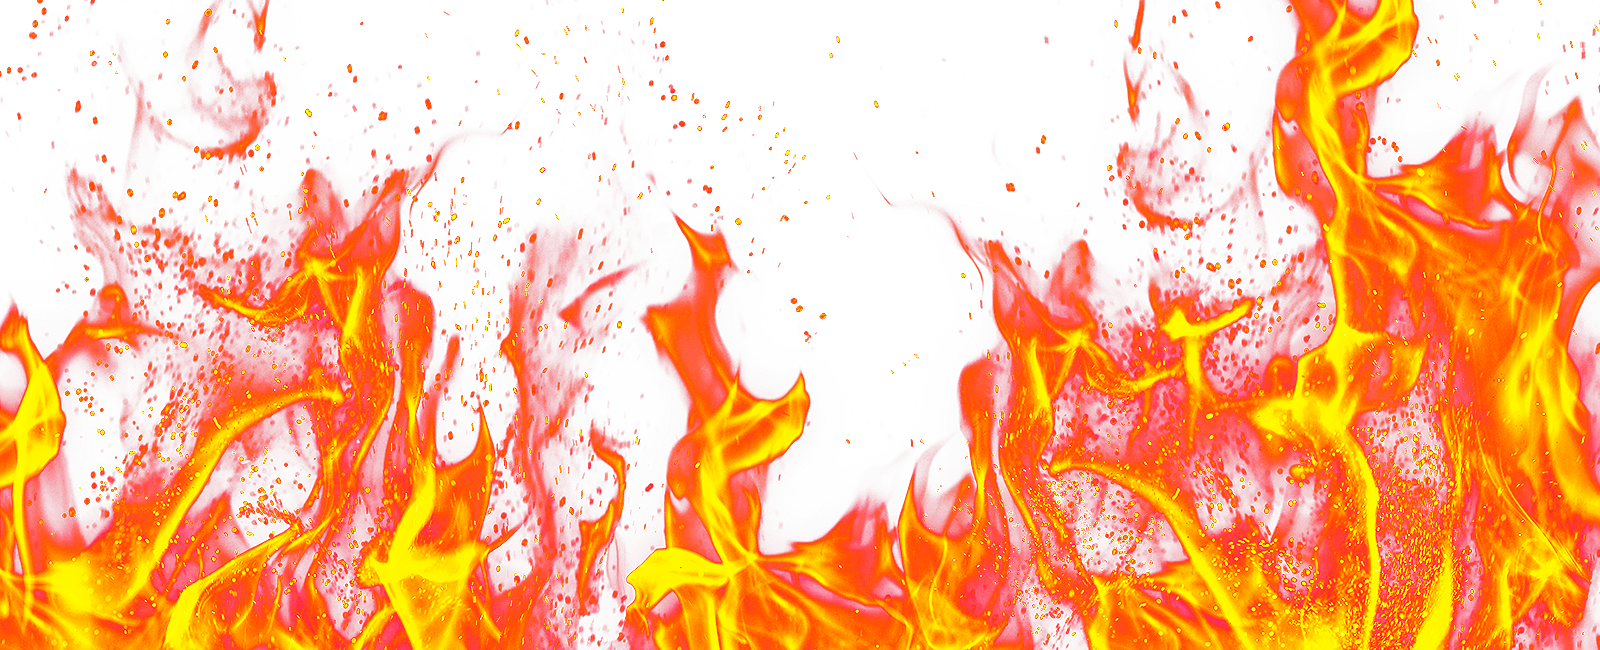 Fire Flame Transparent PNG